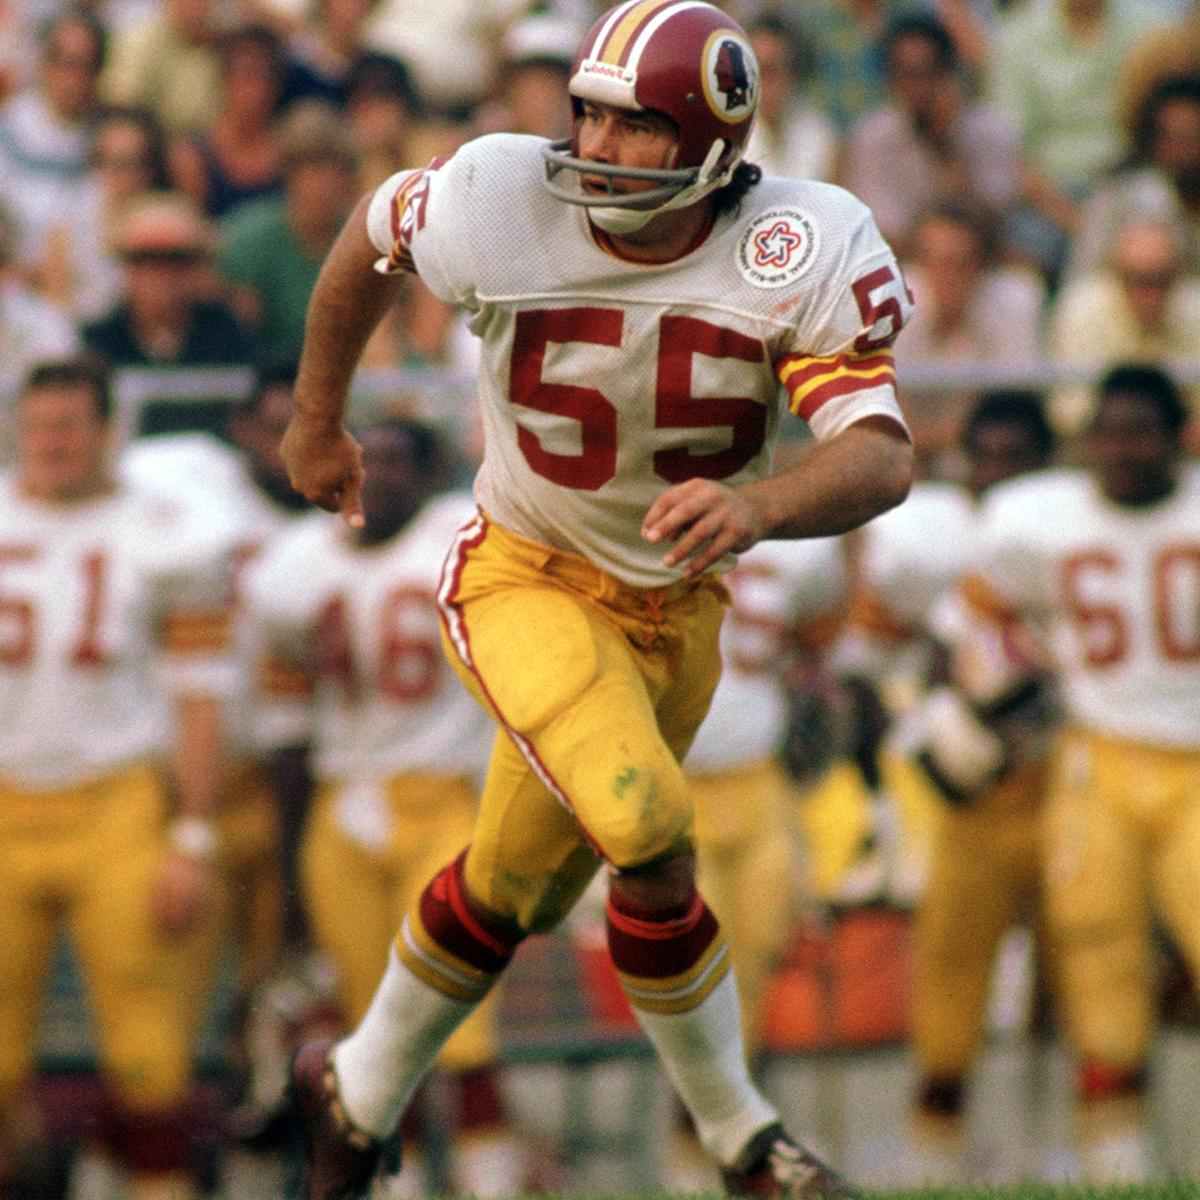 Help us wish a happy birthday to #Redskins great LB Chris Hanburger! #HTTR https://t.co/ggFcfYohPI